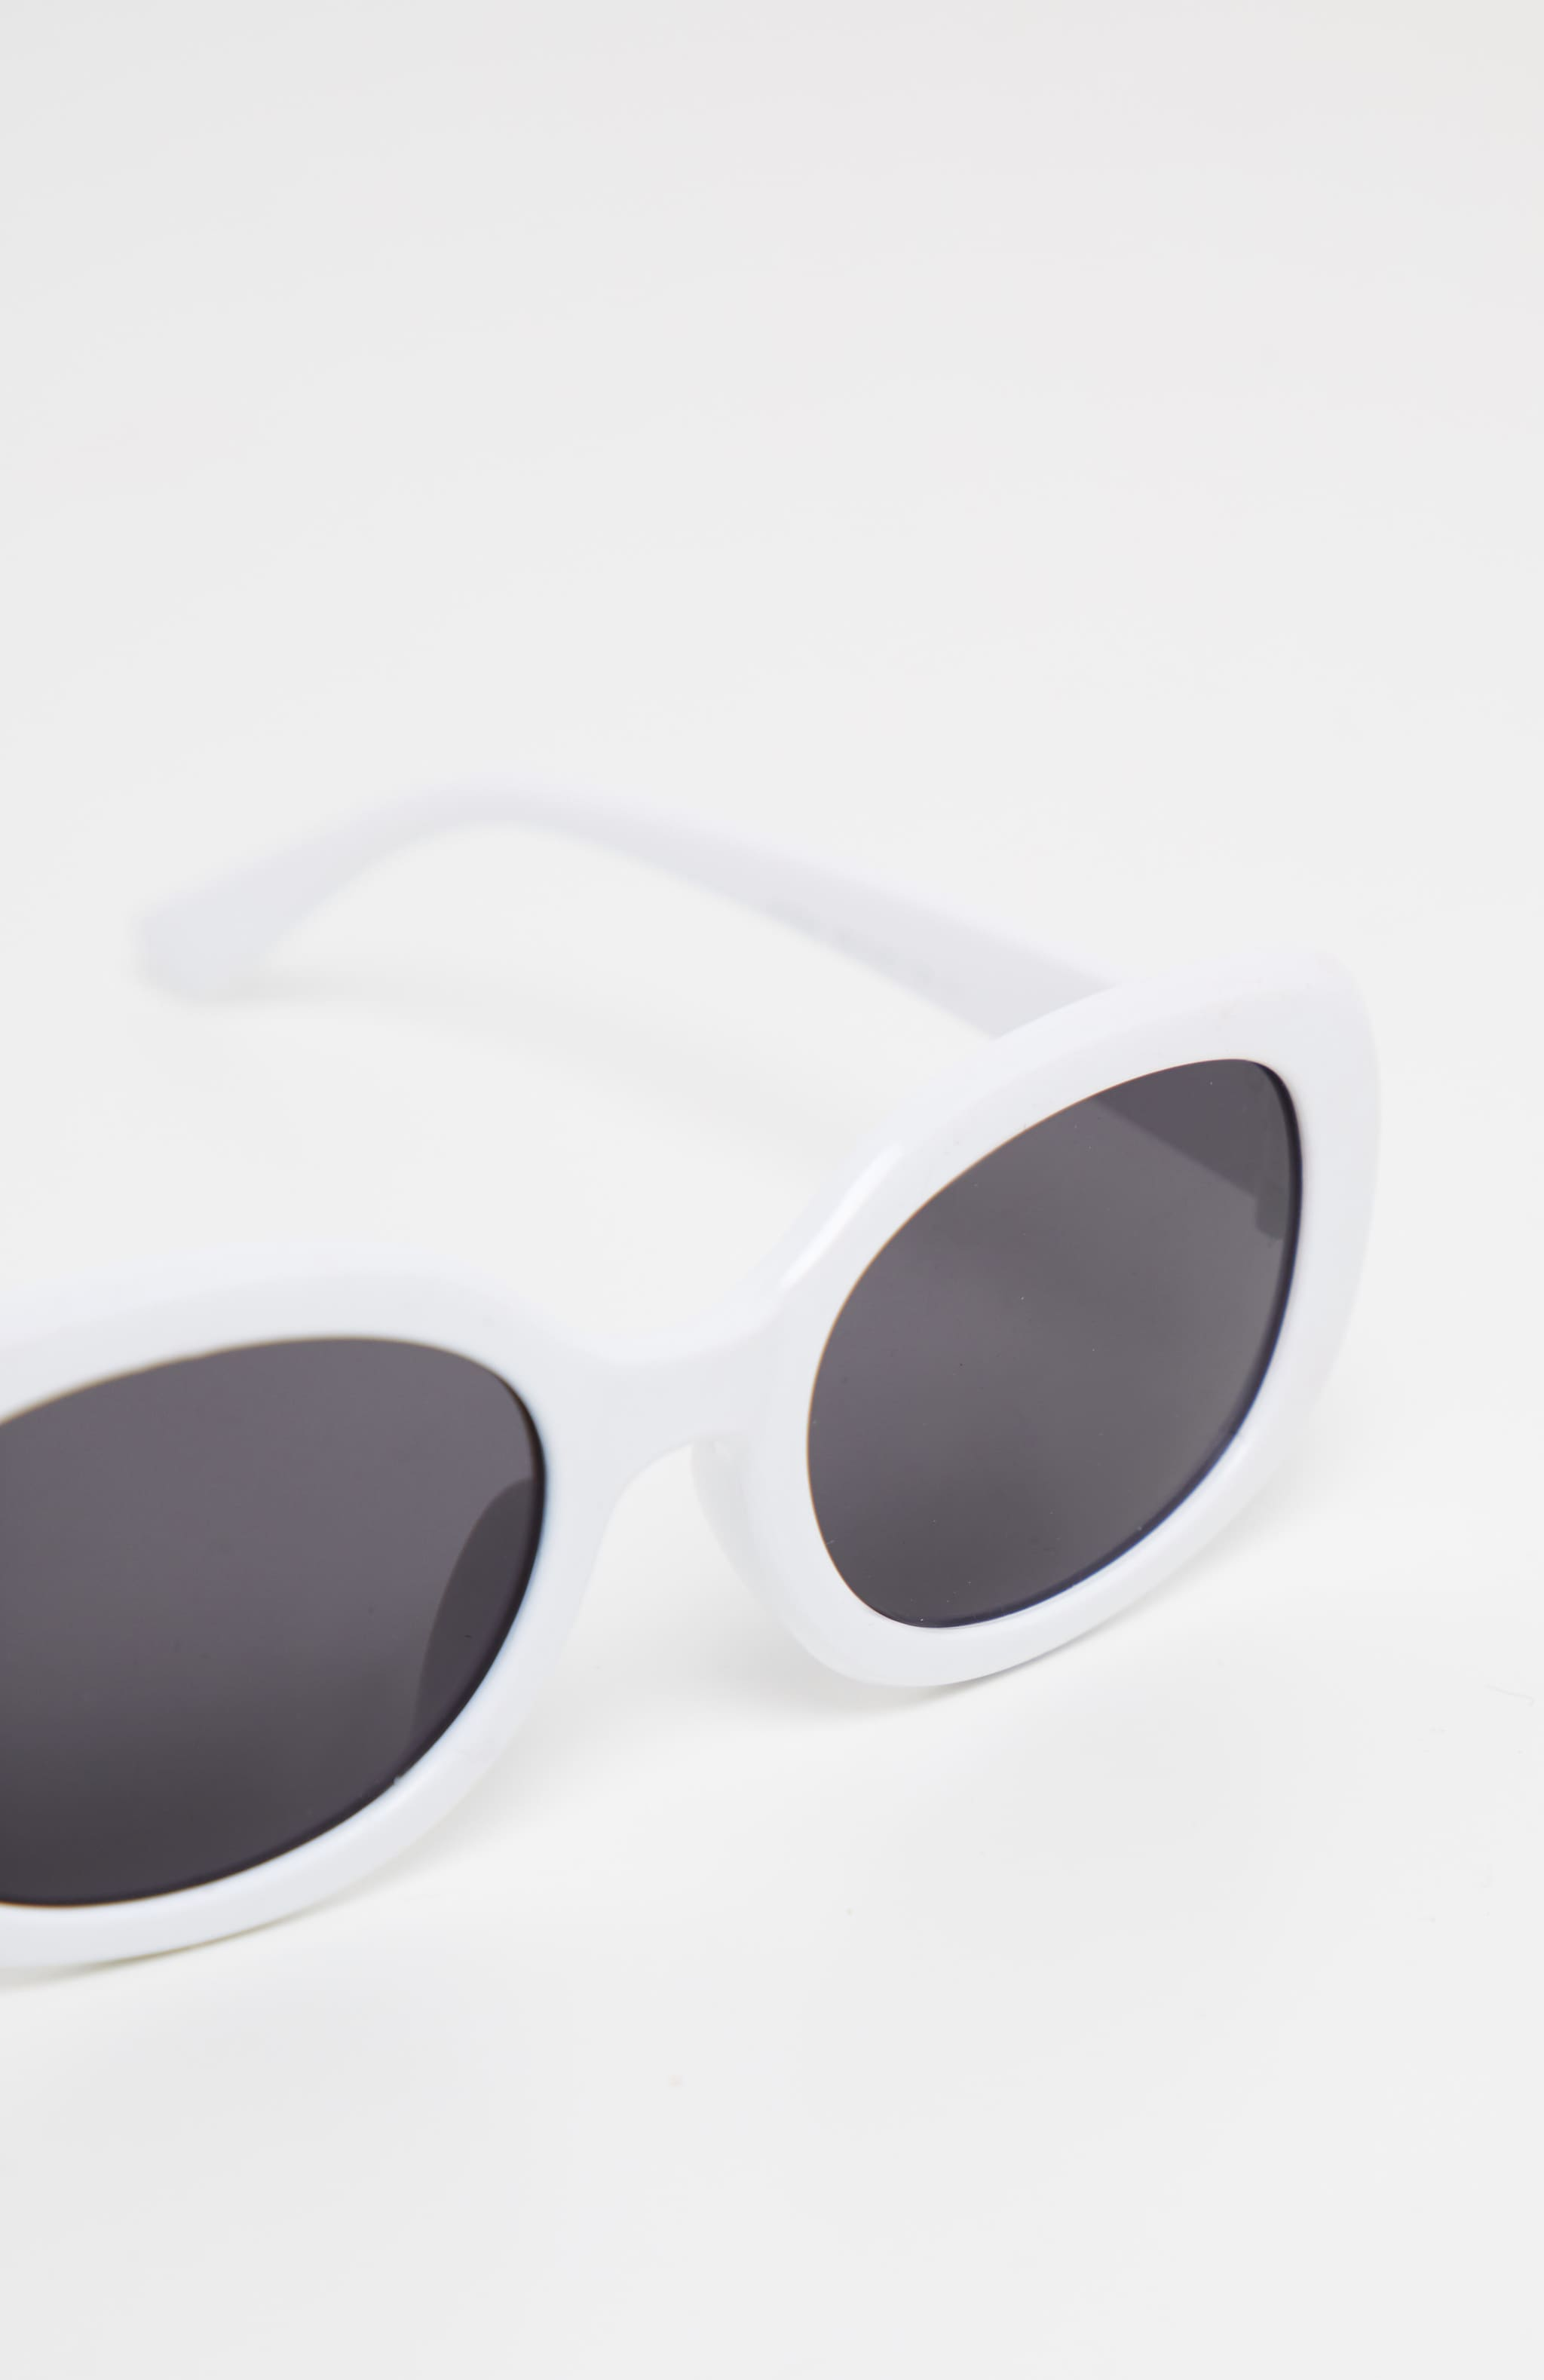 White Oval Shape Retro Sunglasses 4